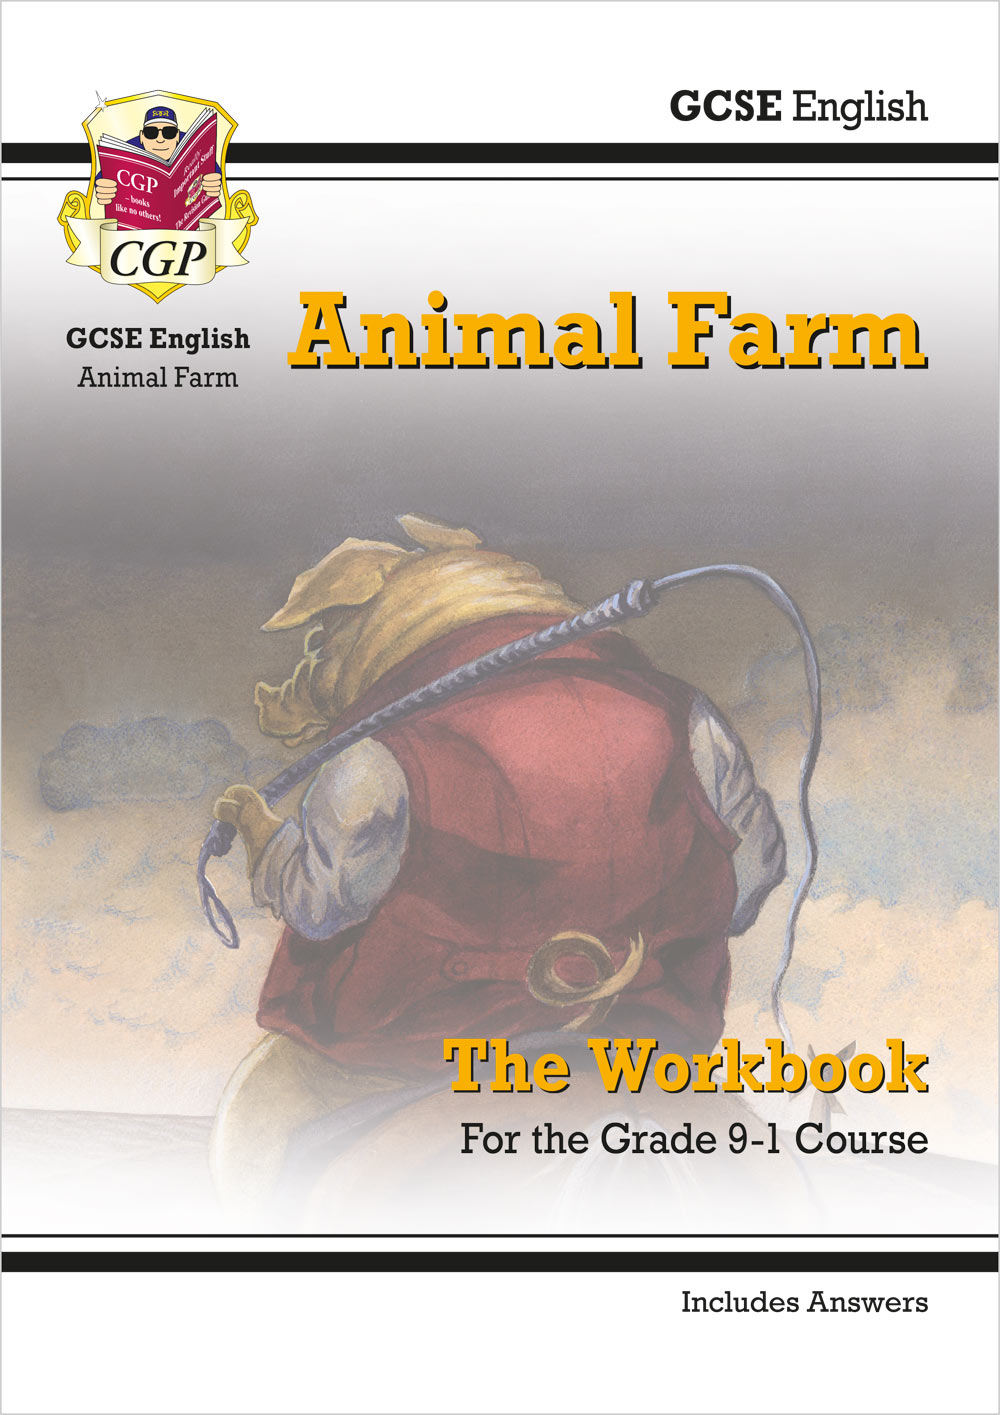 ETWA41 - New Grade 9-1 GCSE English - Animal Farm Workbook (includes Answers)